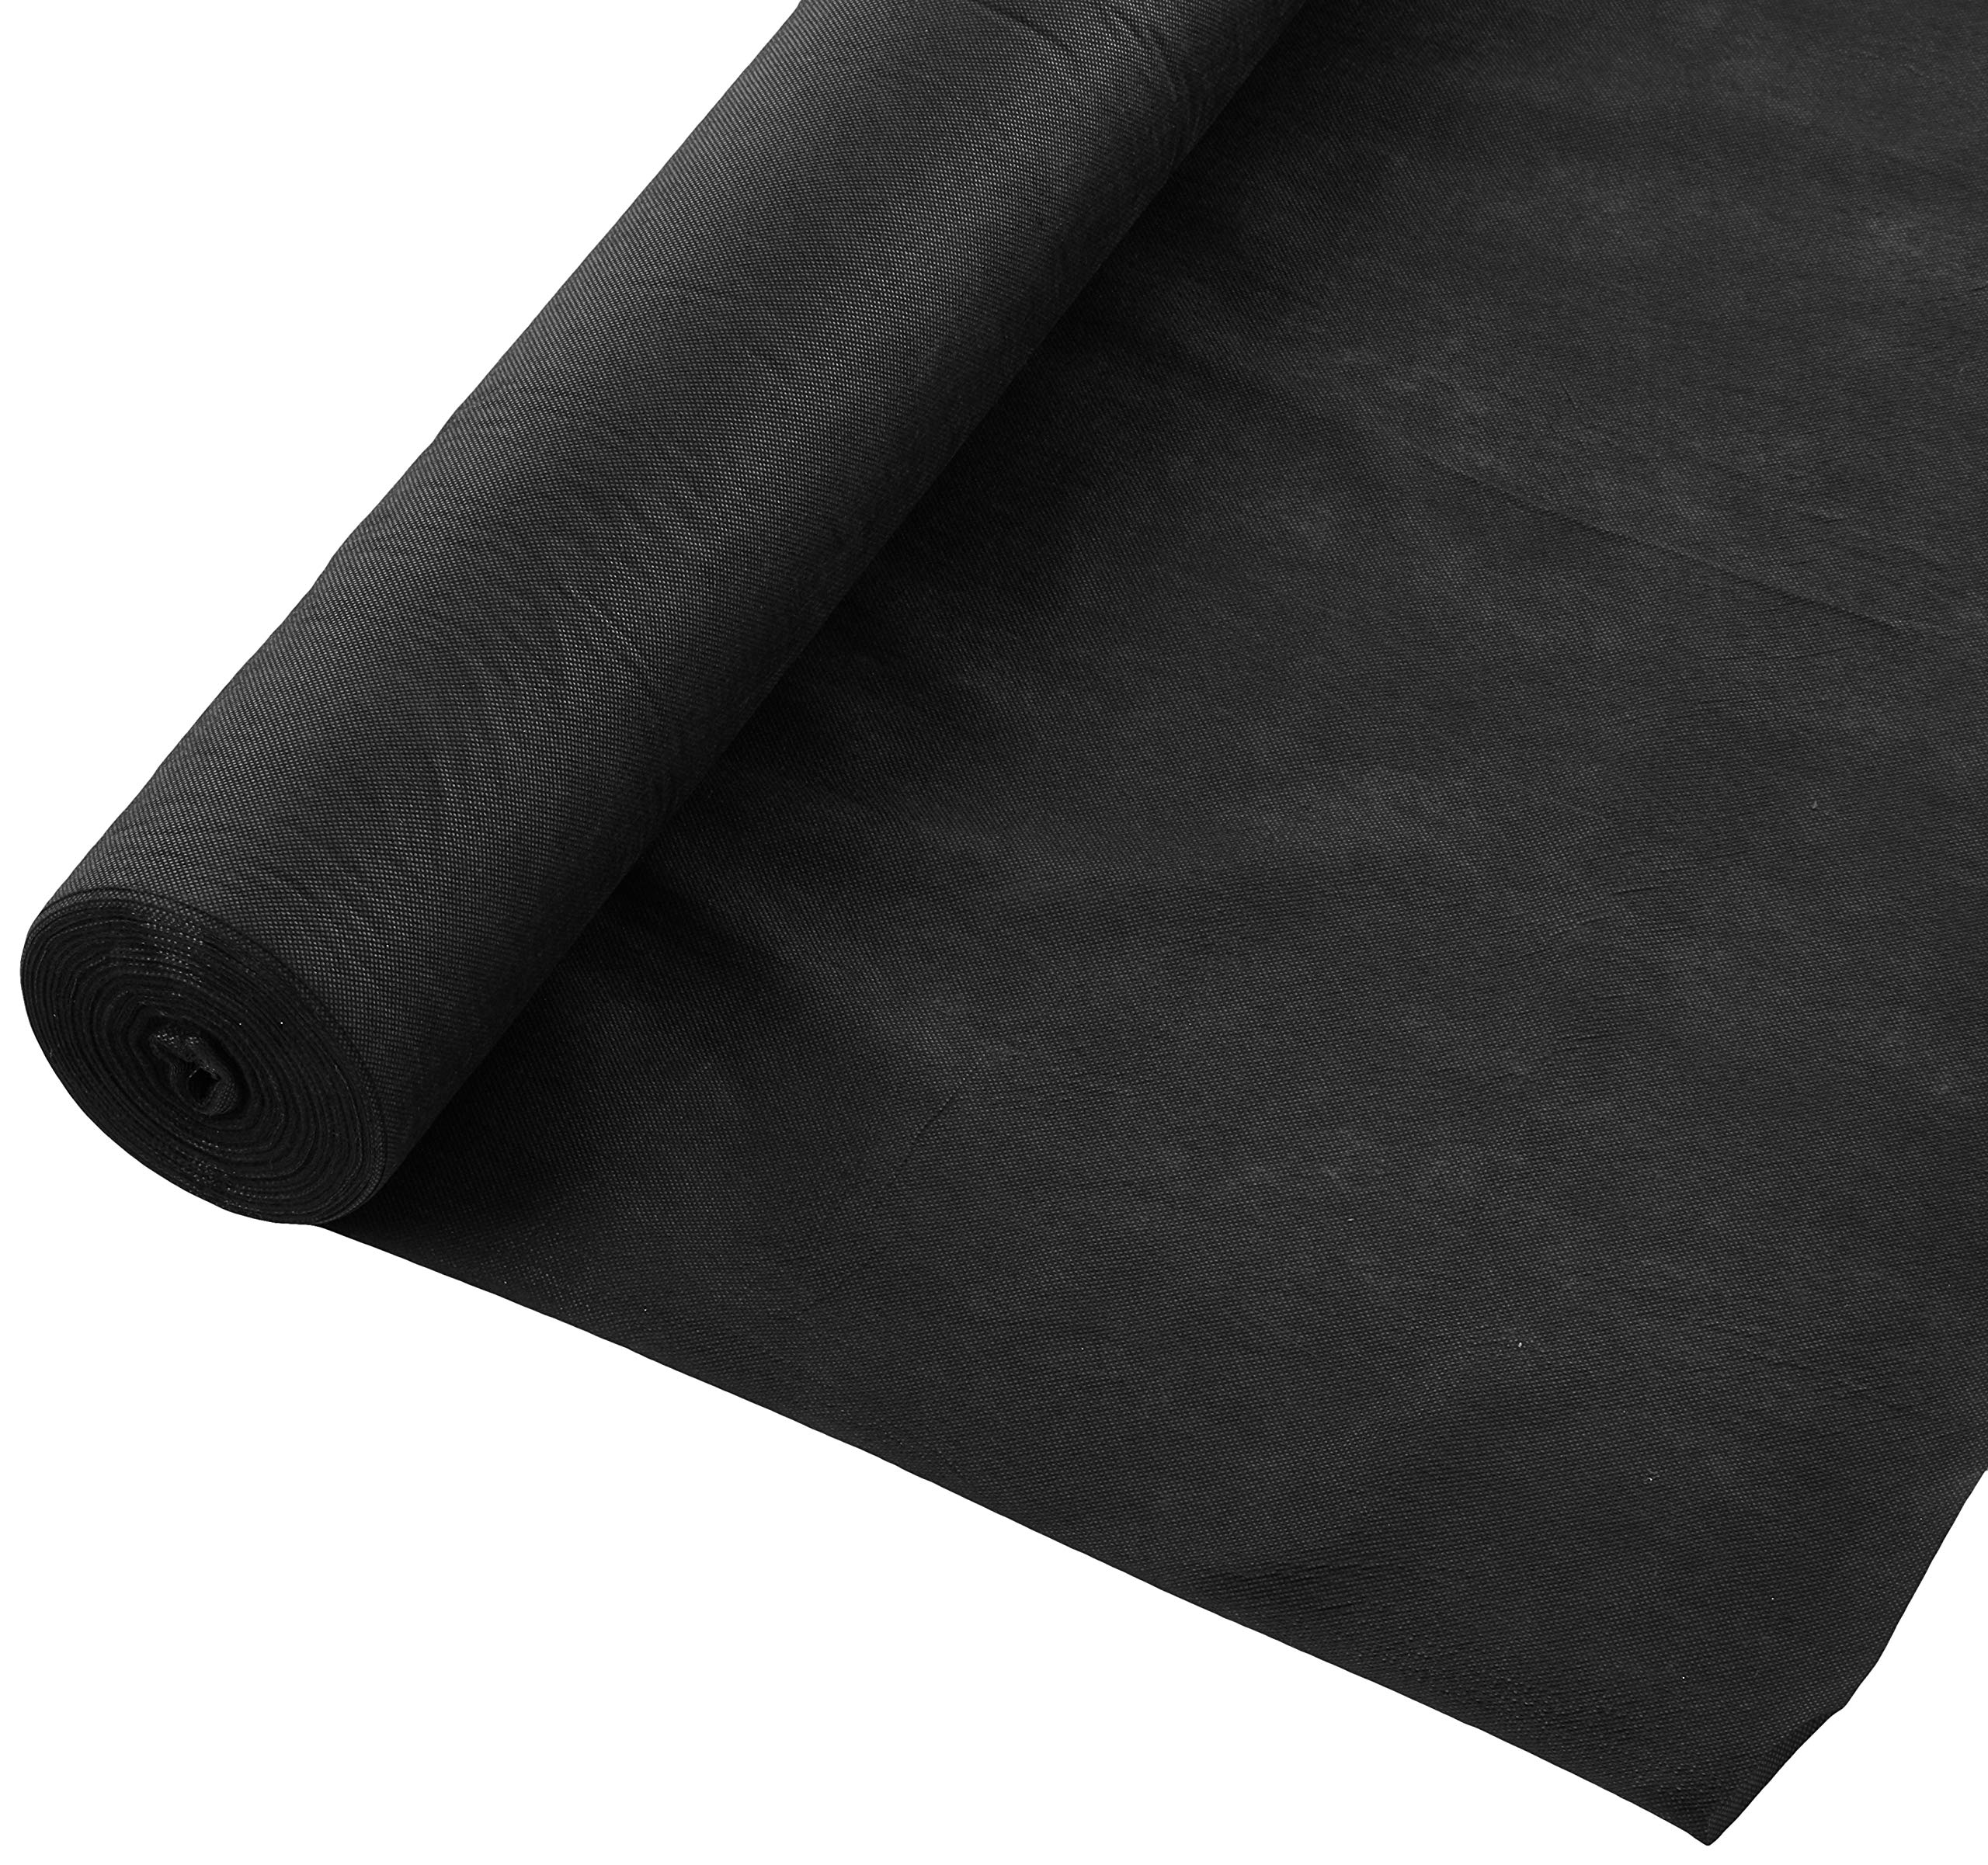 American Home and Gardneing PPB150 AHG Premium 15yr 3'x150' Landscape/Weed Control Fabric, Black